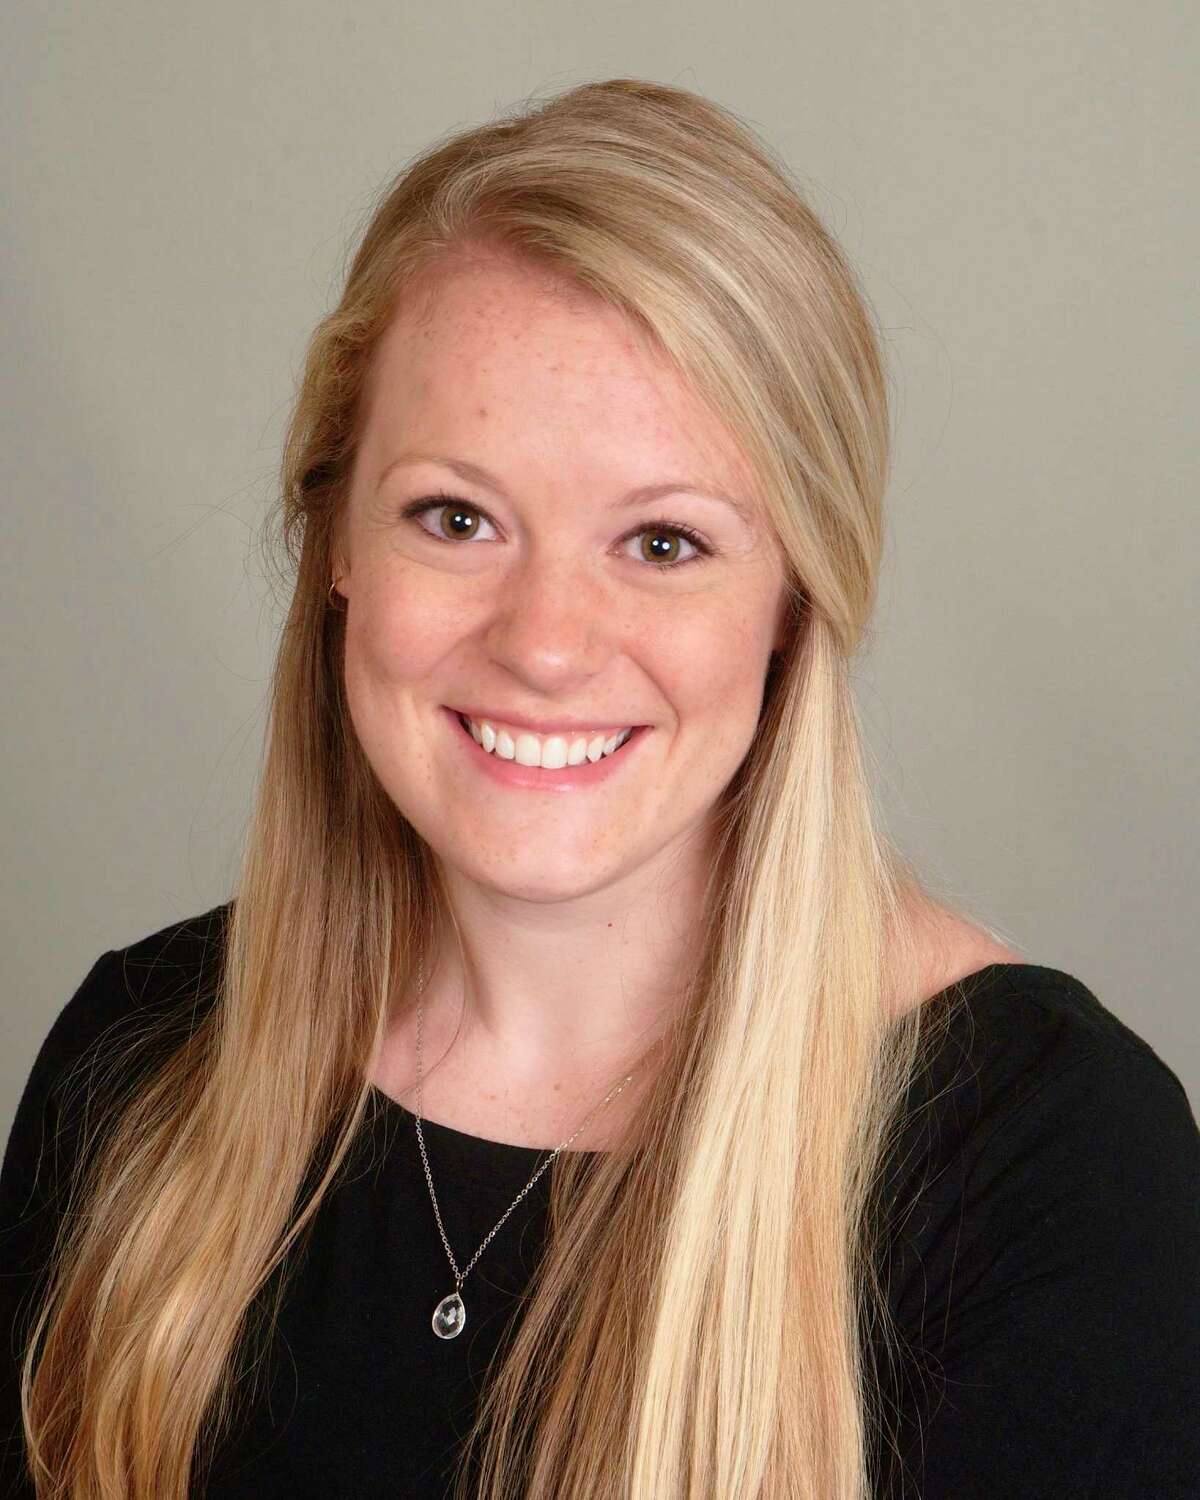 A. Jane Morrison, M.D., has joined MidMichigan Obstetrics & Gynecology on Wackerly Street and is welcoming new patients.